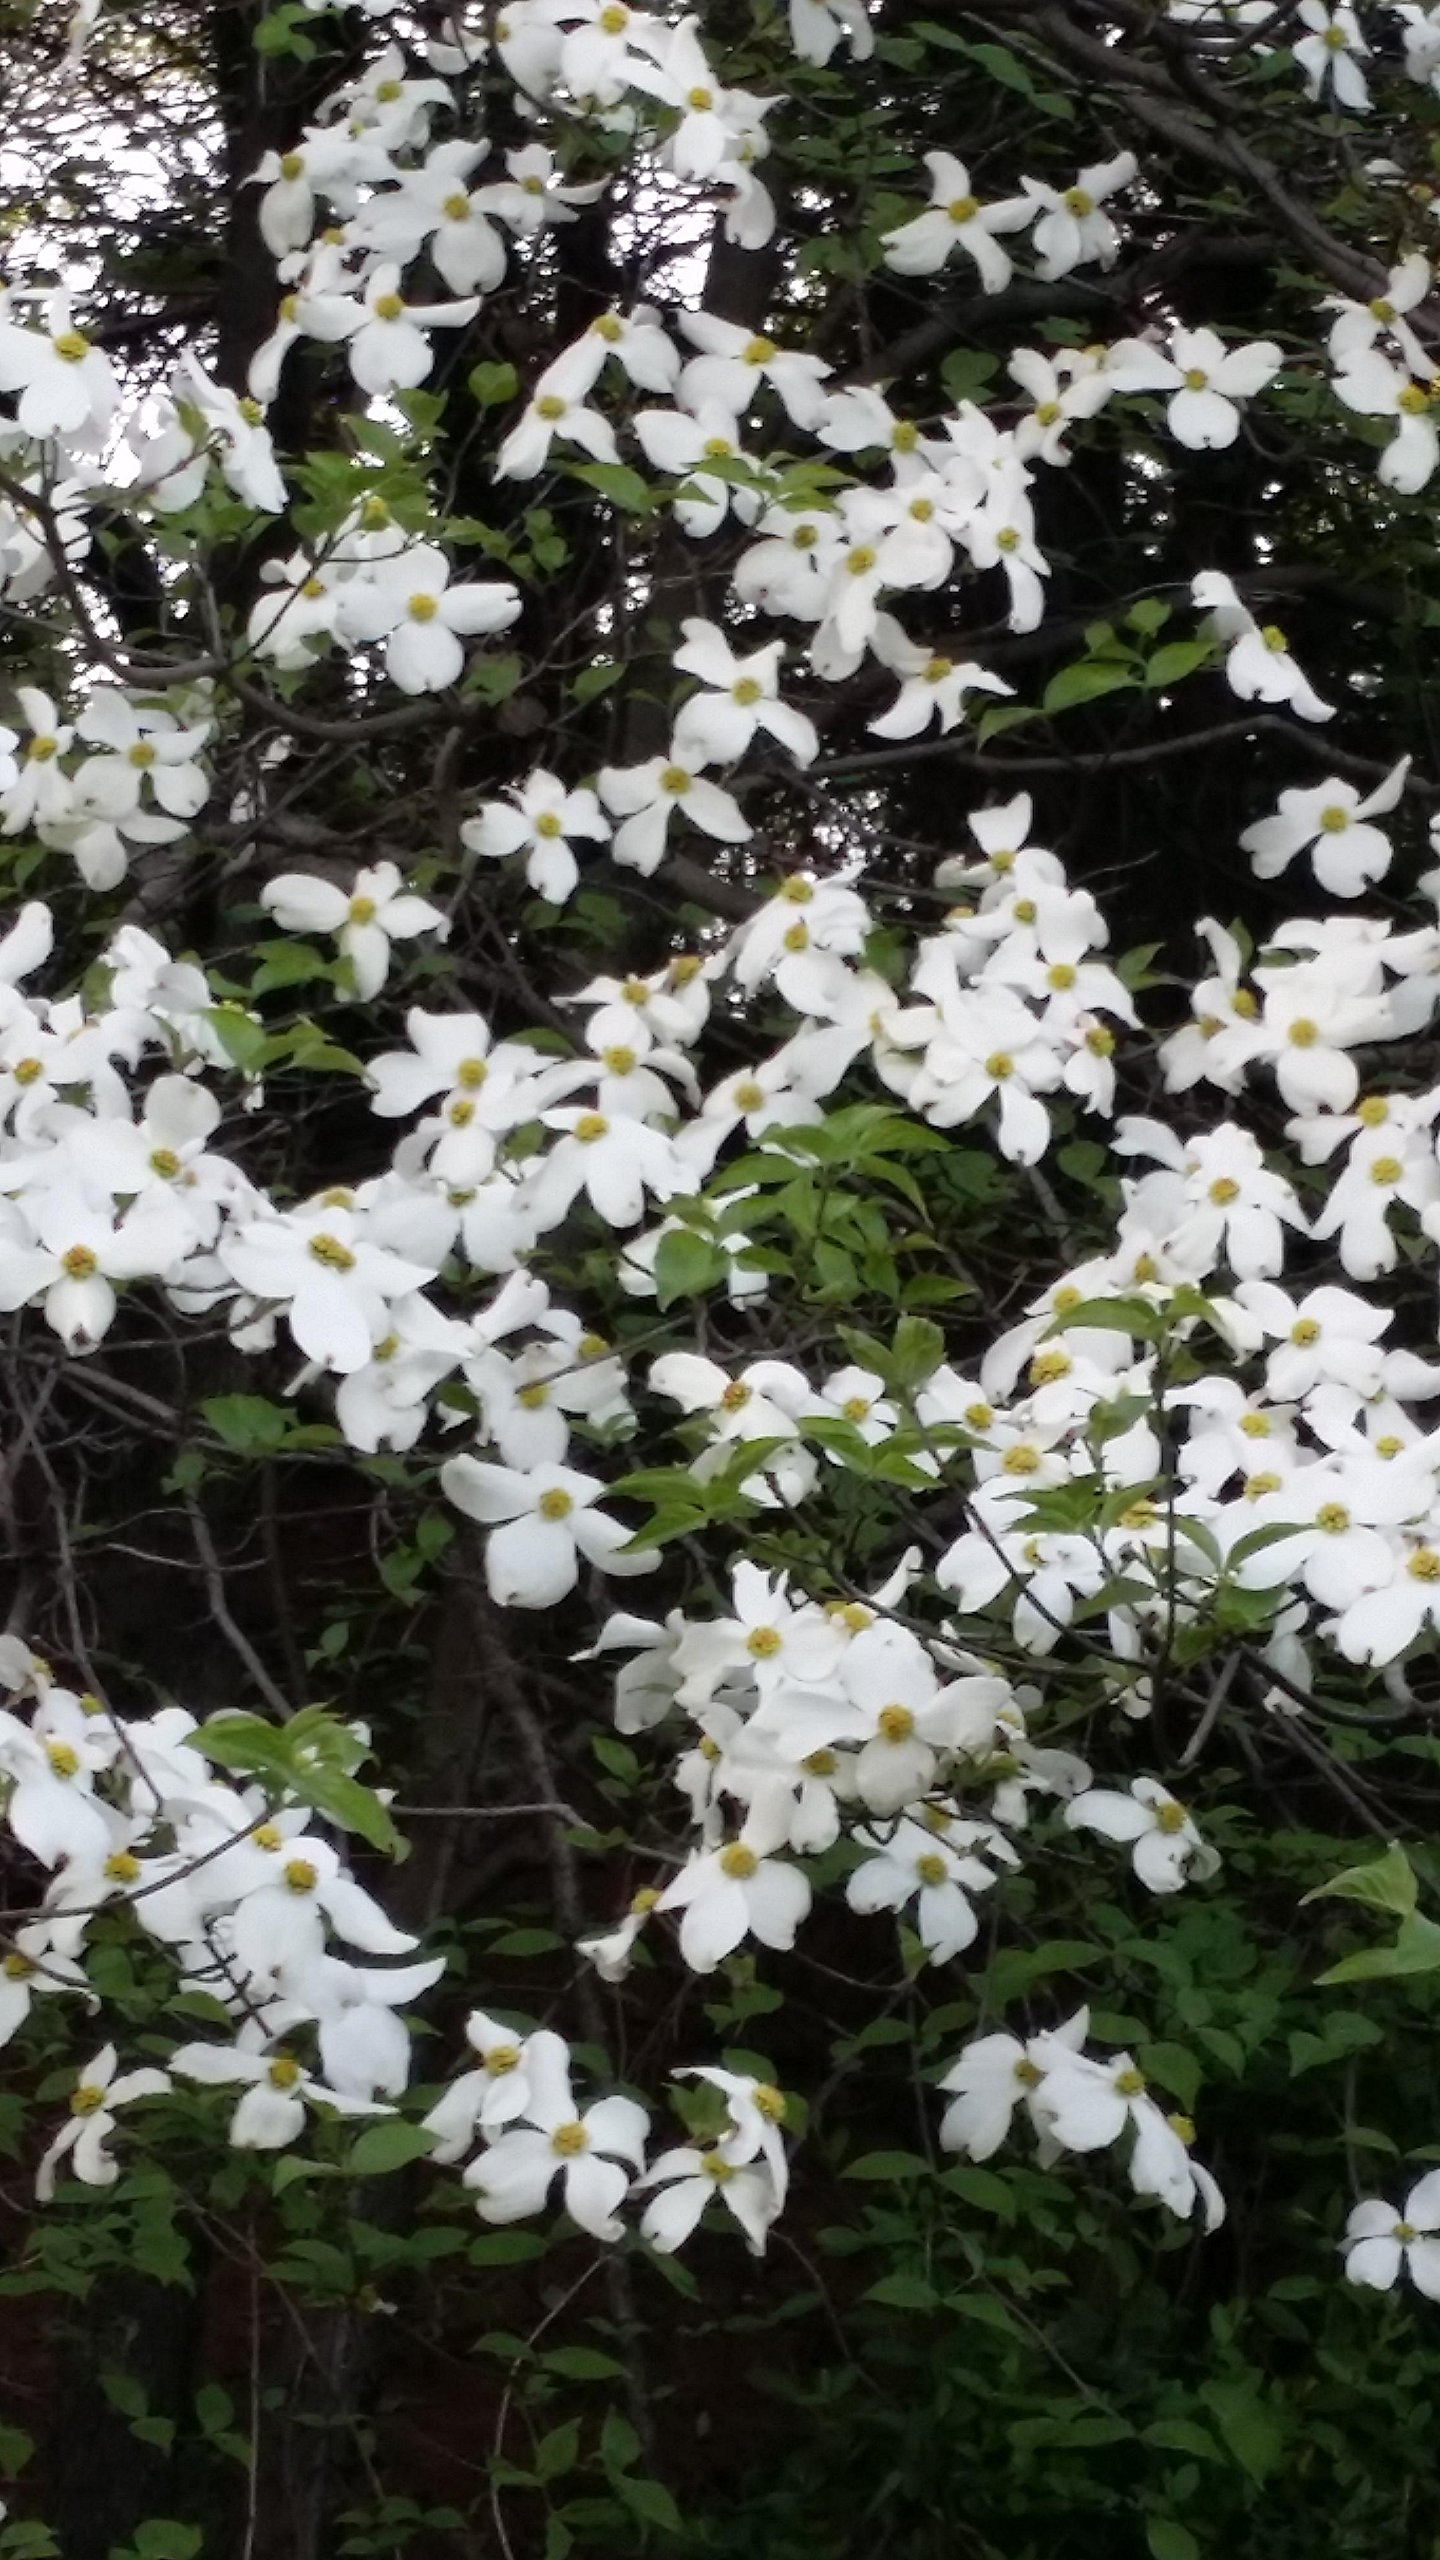 (1 gallon bare-root) Dogwood CELESTIAL SHADOW(hybrid)Tree, Variegated Dogwood with white flowers, Green leaves with white margins, turning pink, highly resistant to anthracnose